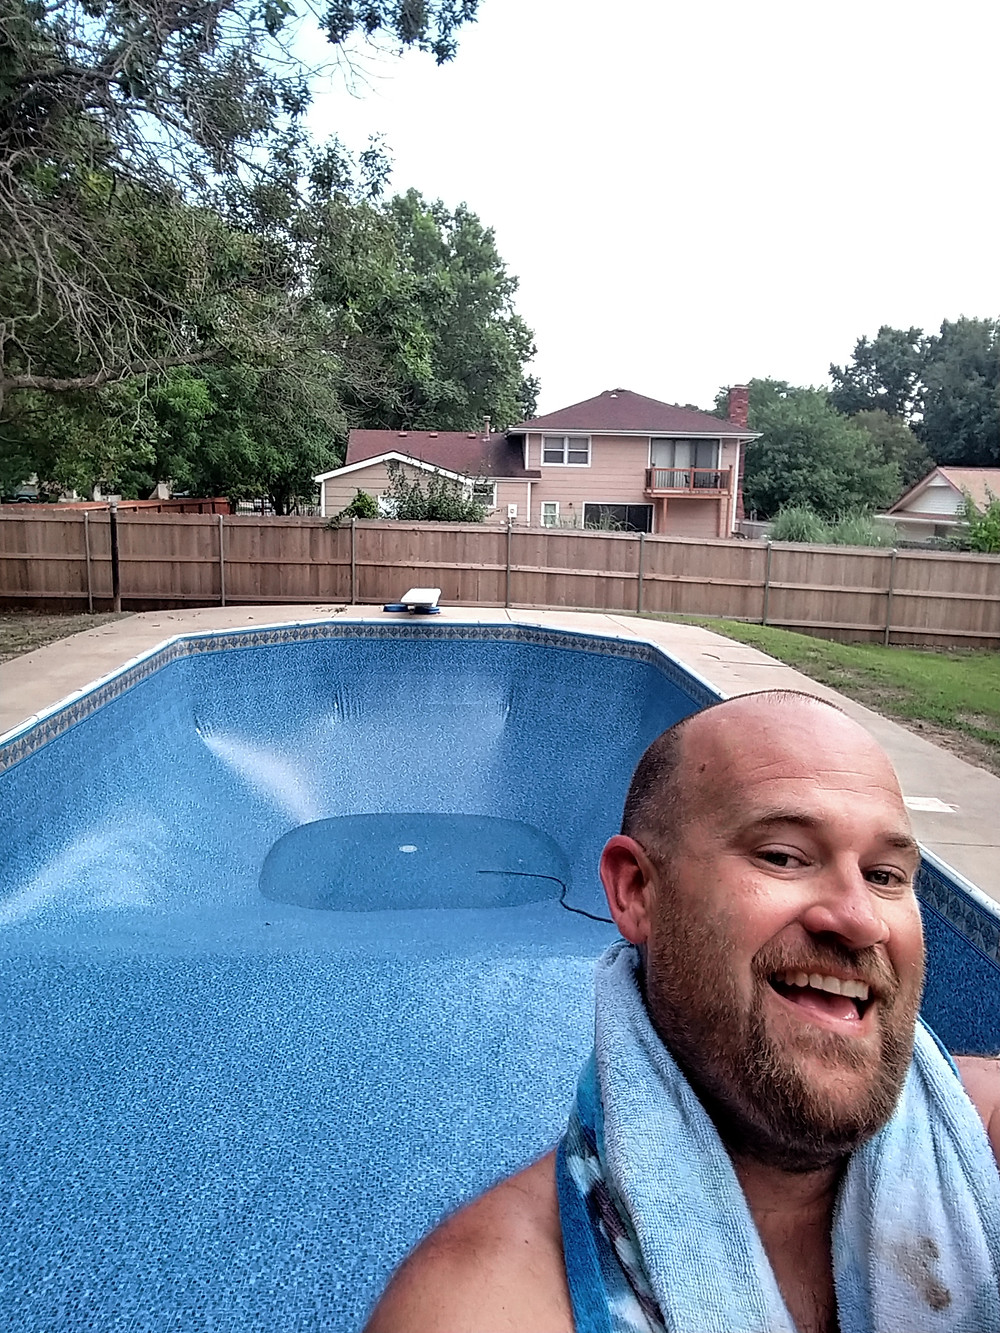 Man by Filling pool with new liner